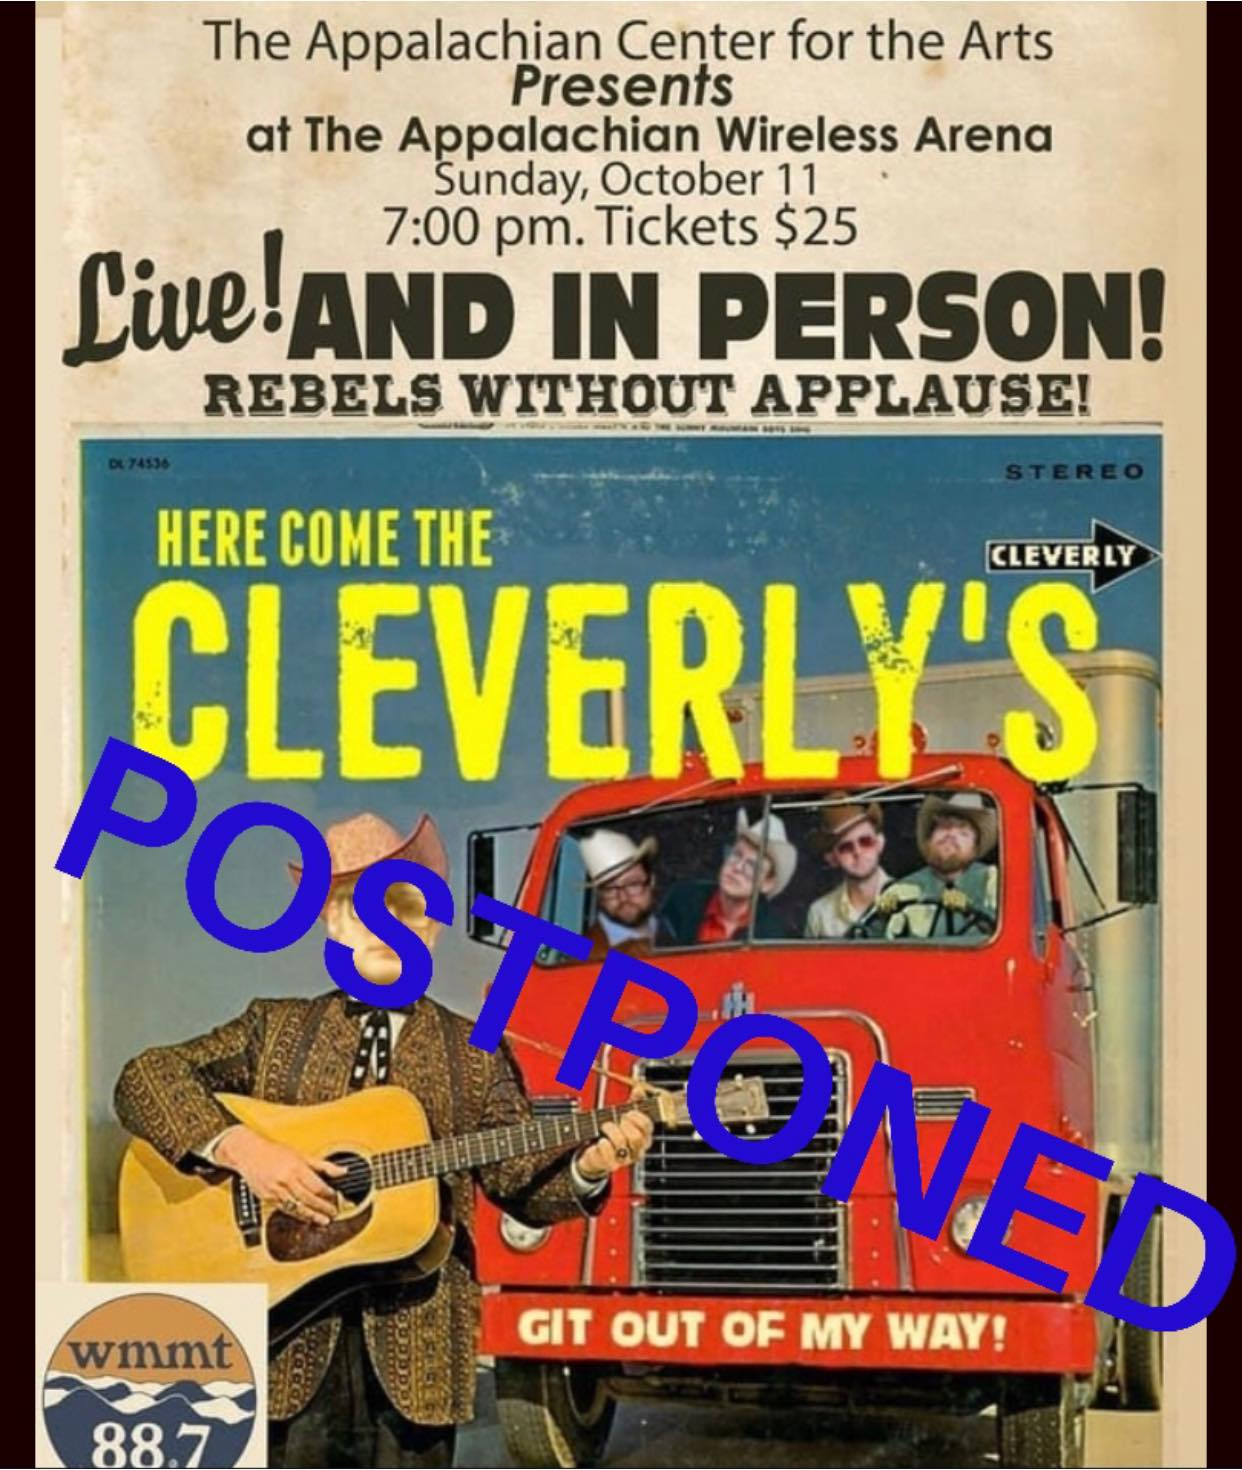 cleverlys postponed